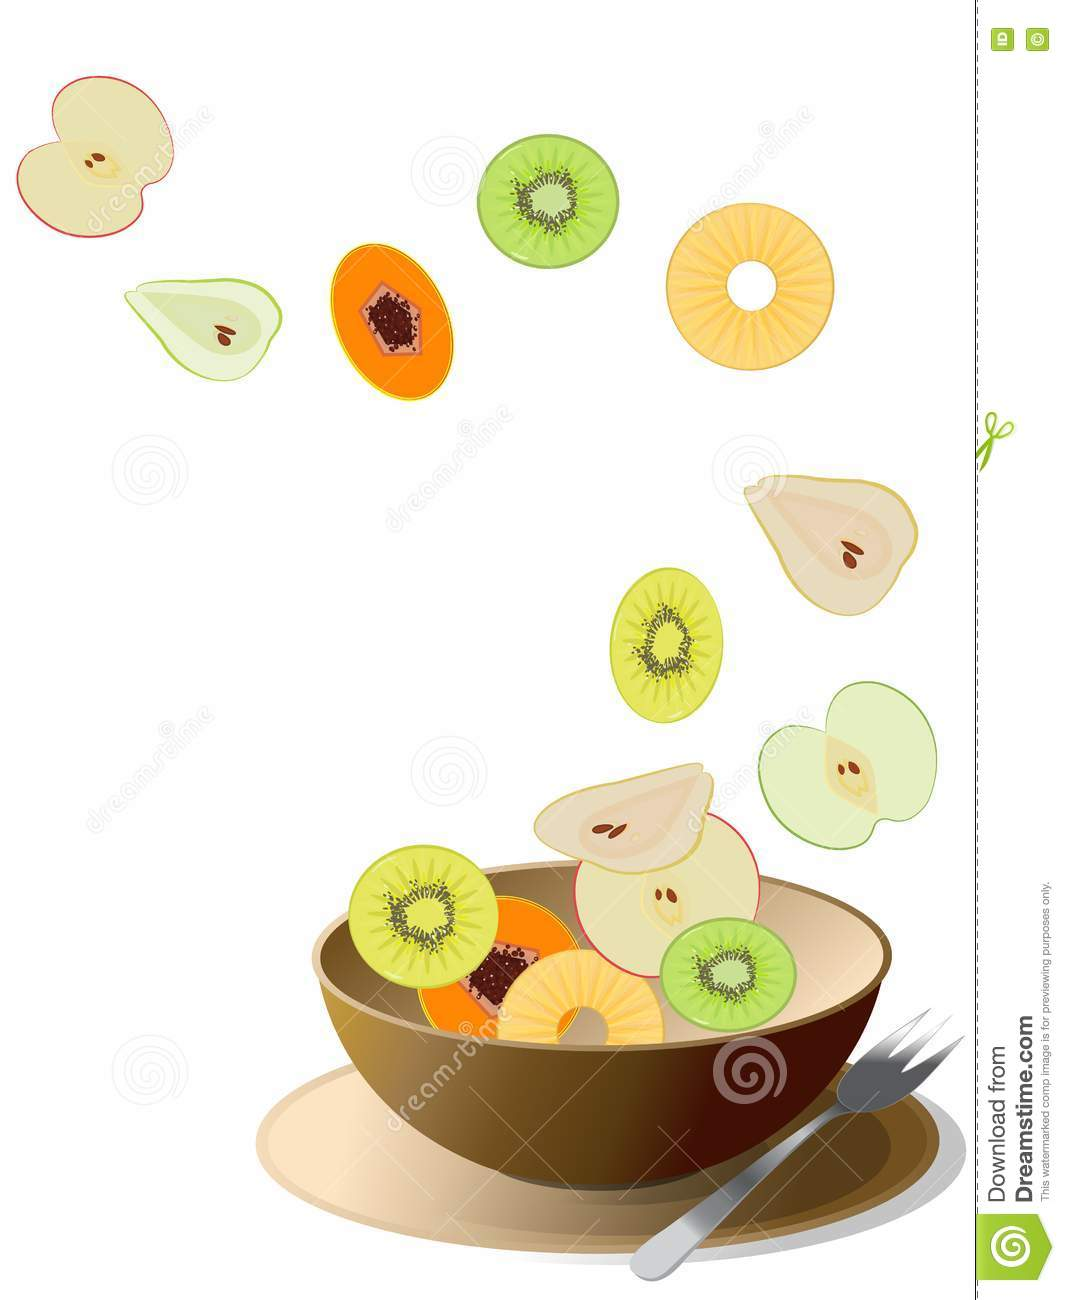 Colorful Fruit Bowl Bowl With Sliced Colorful Fruits Royalty Free Stock Image